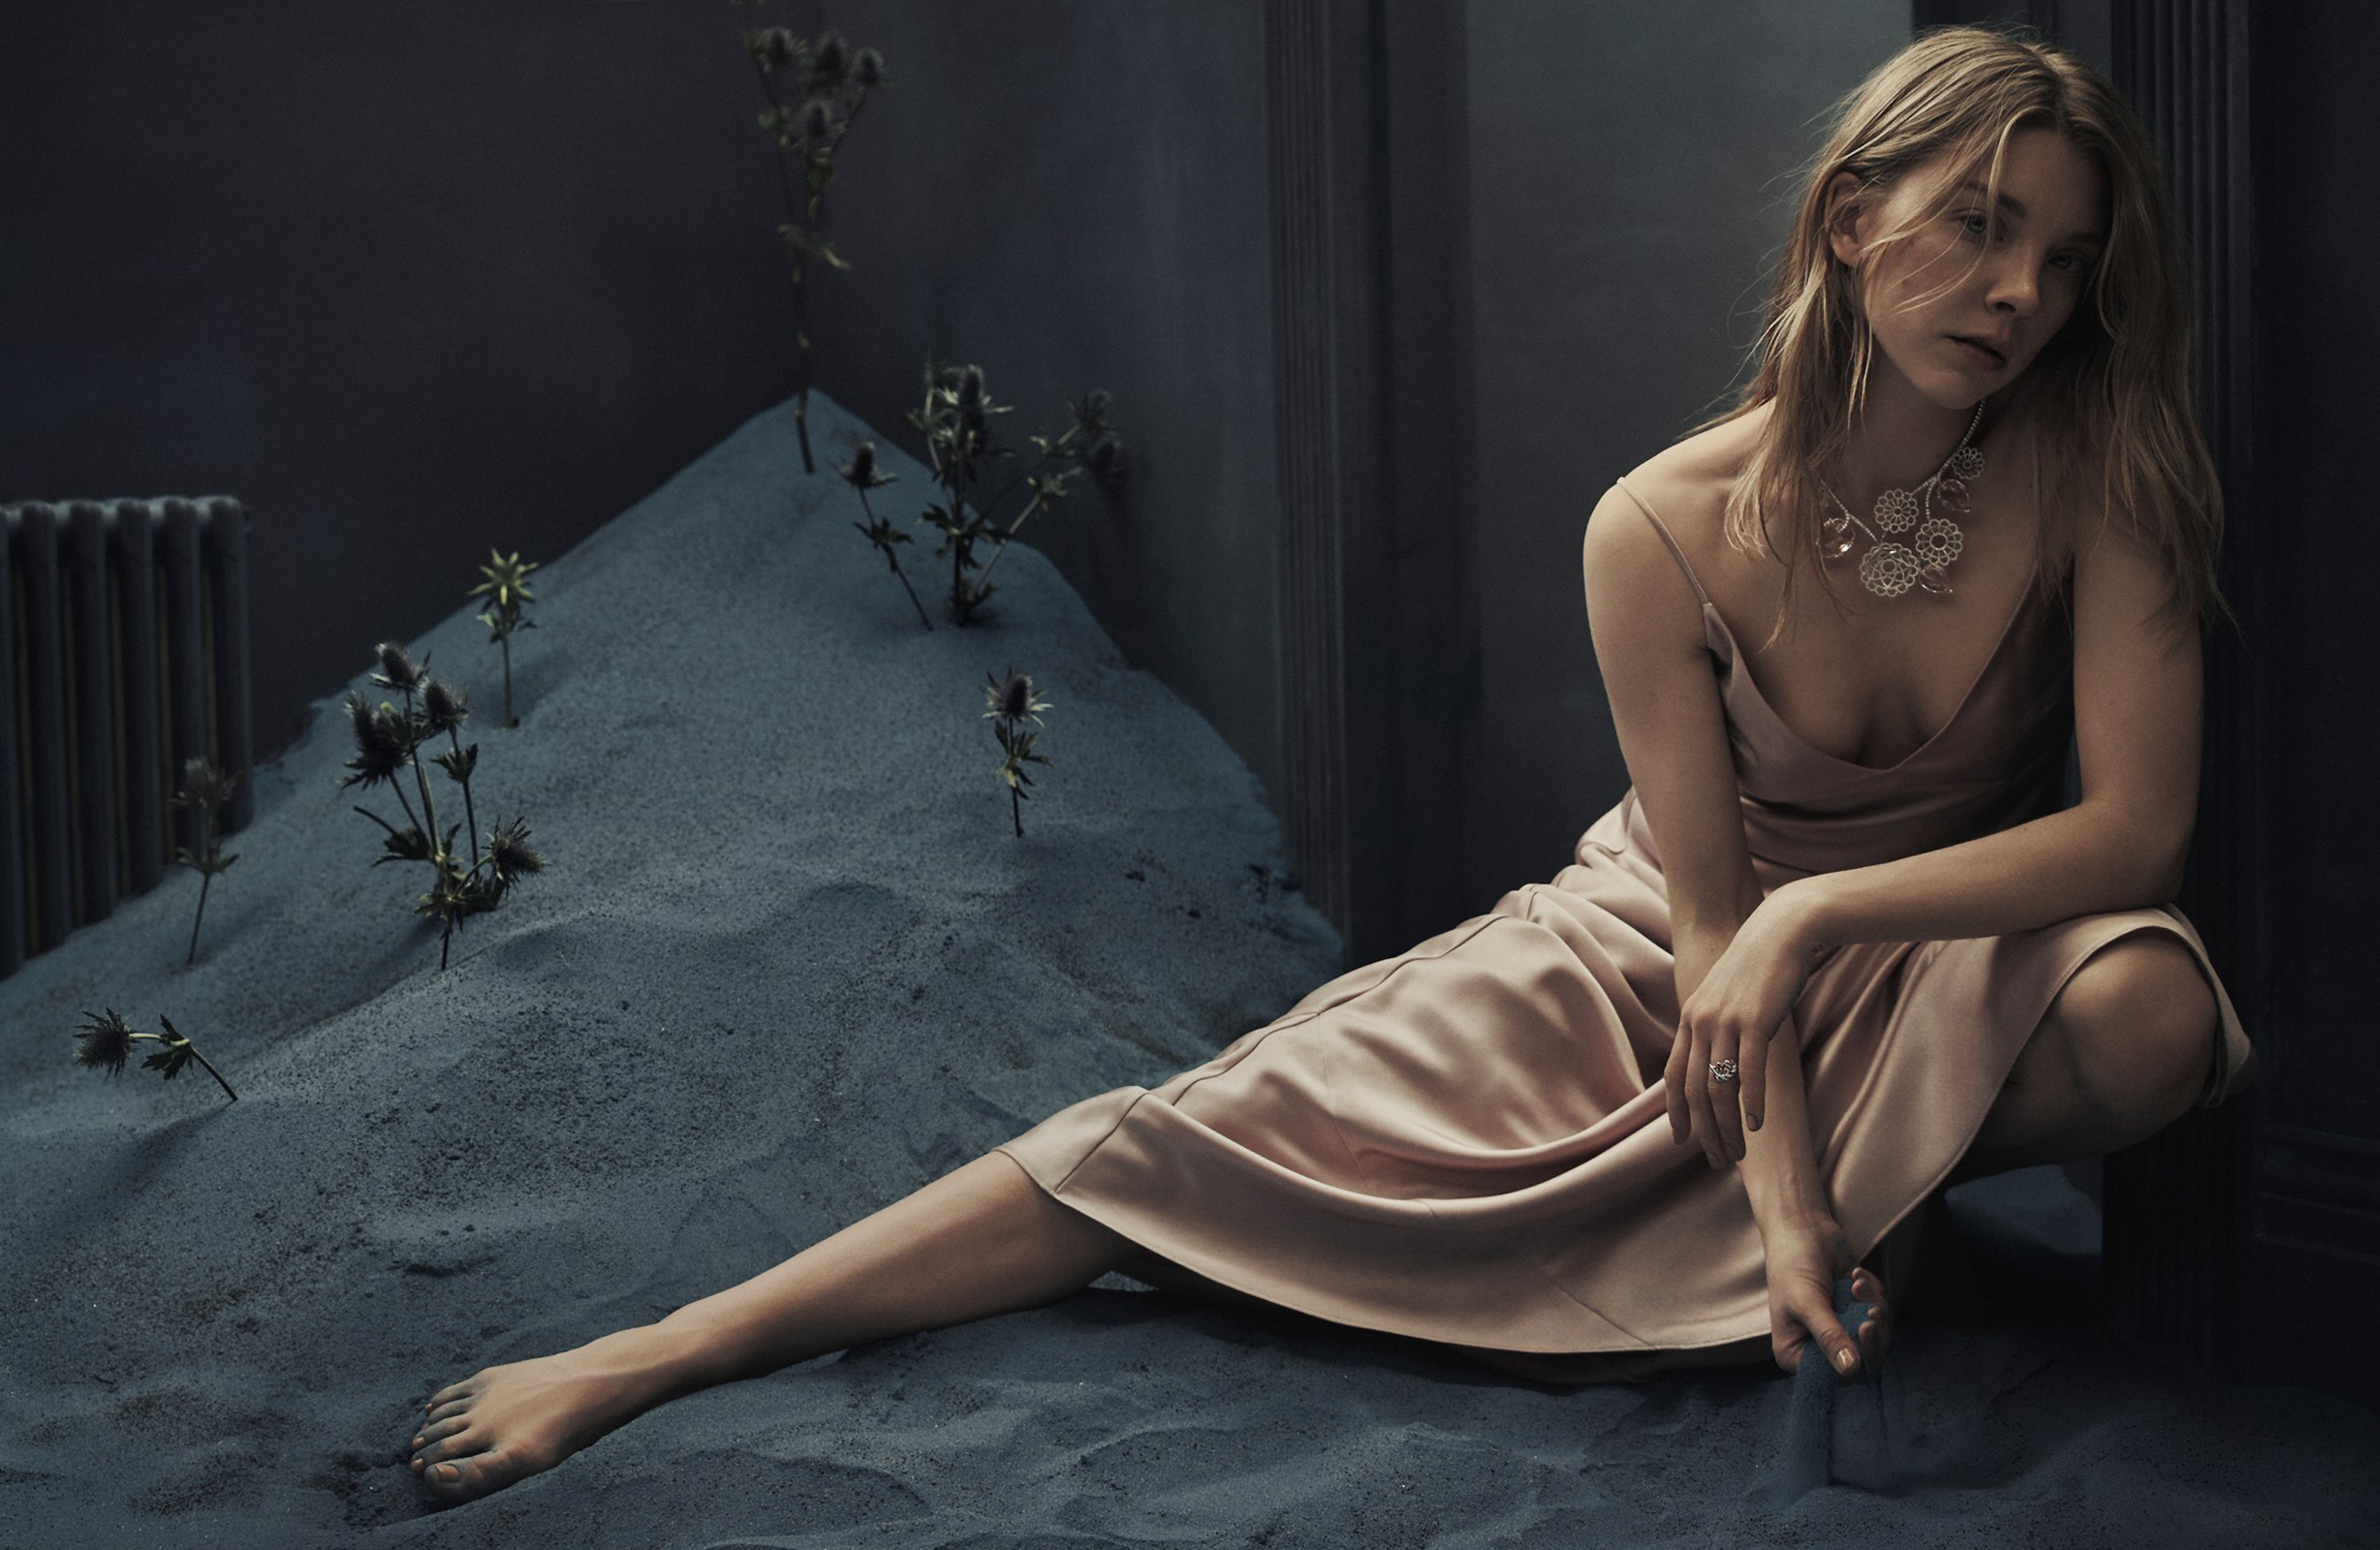 Natalie Dormer In Vanity Fair